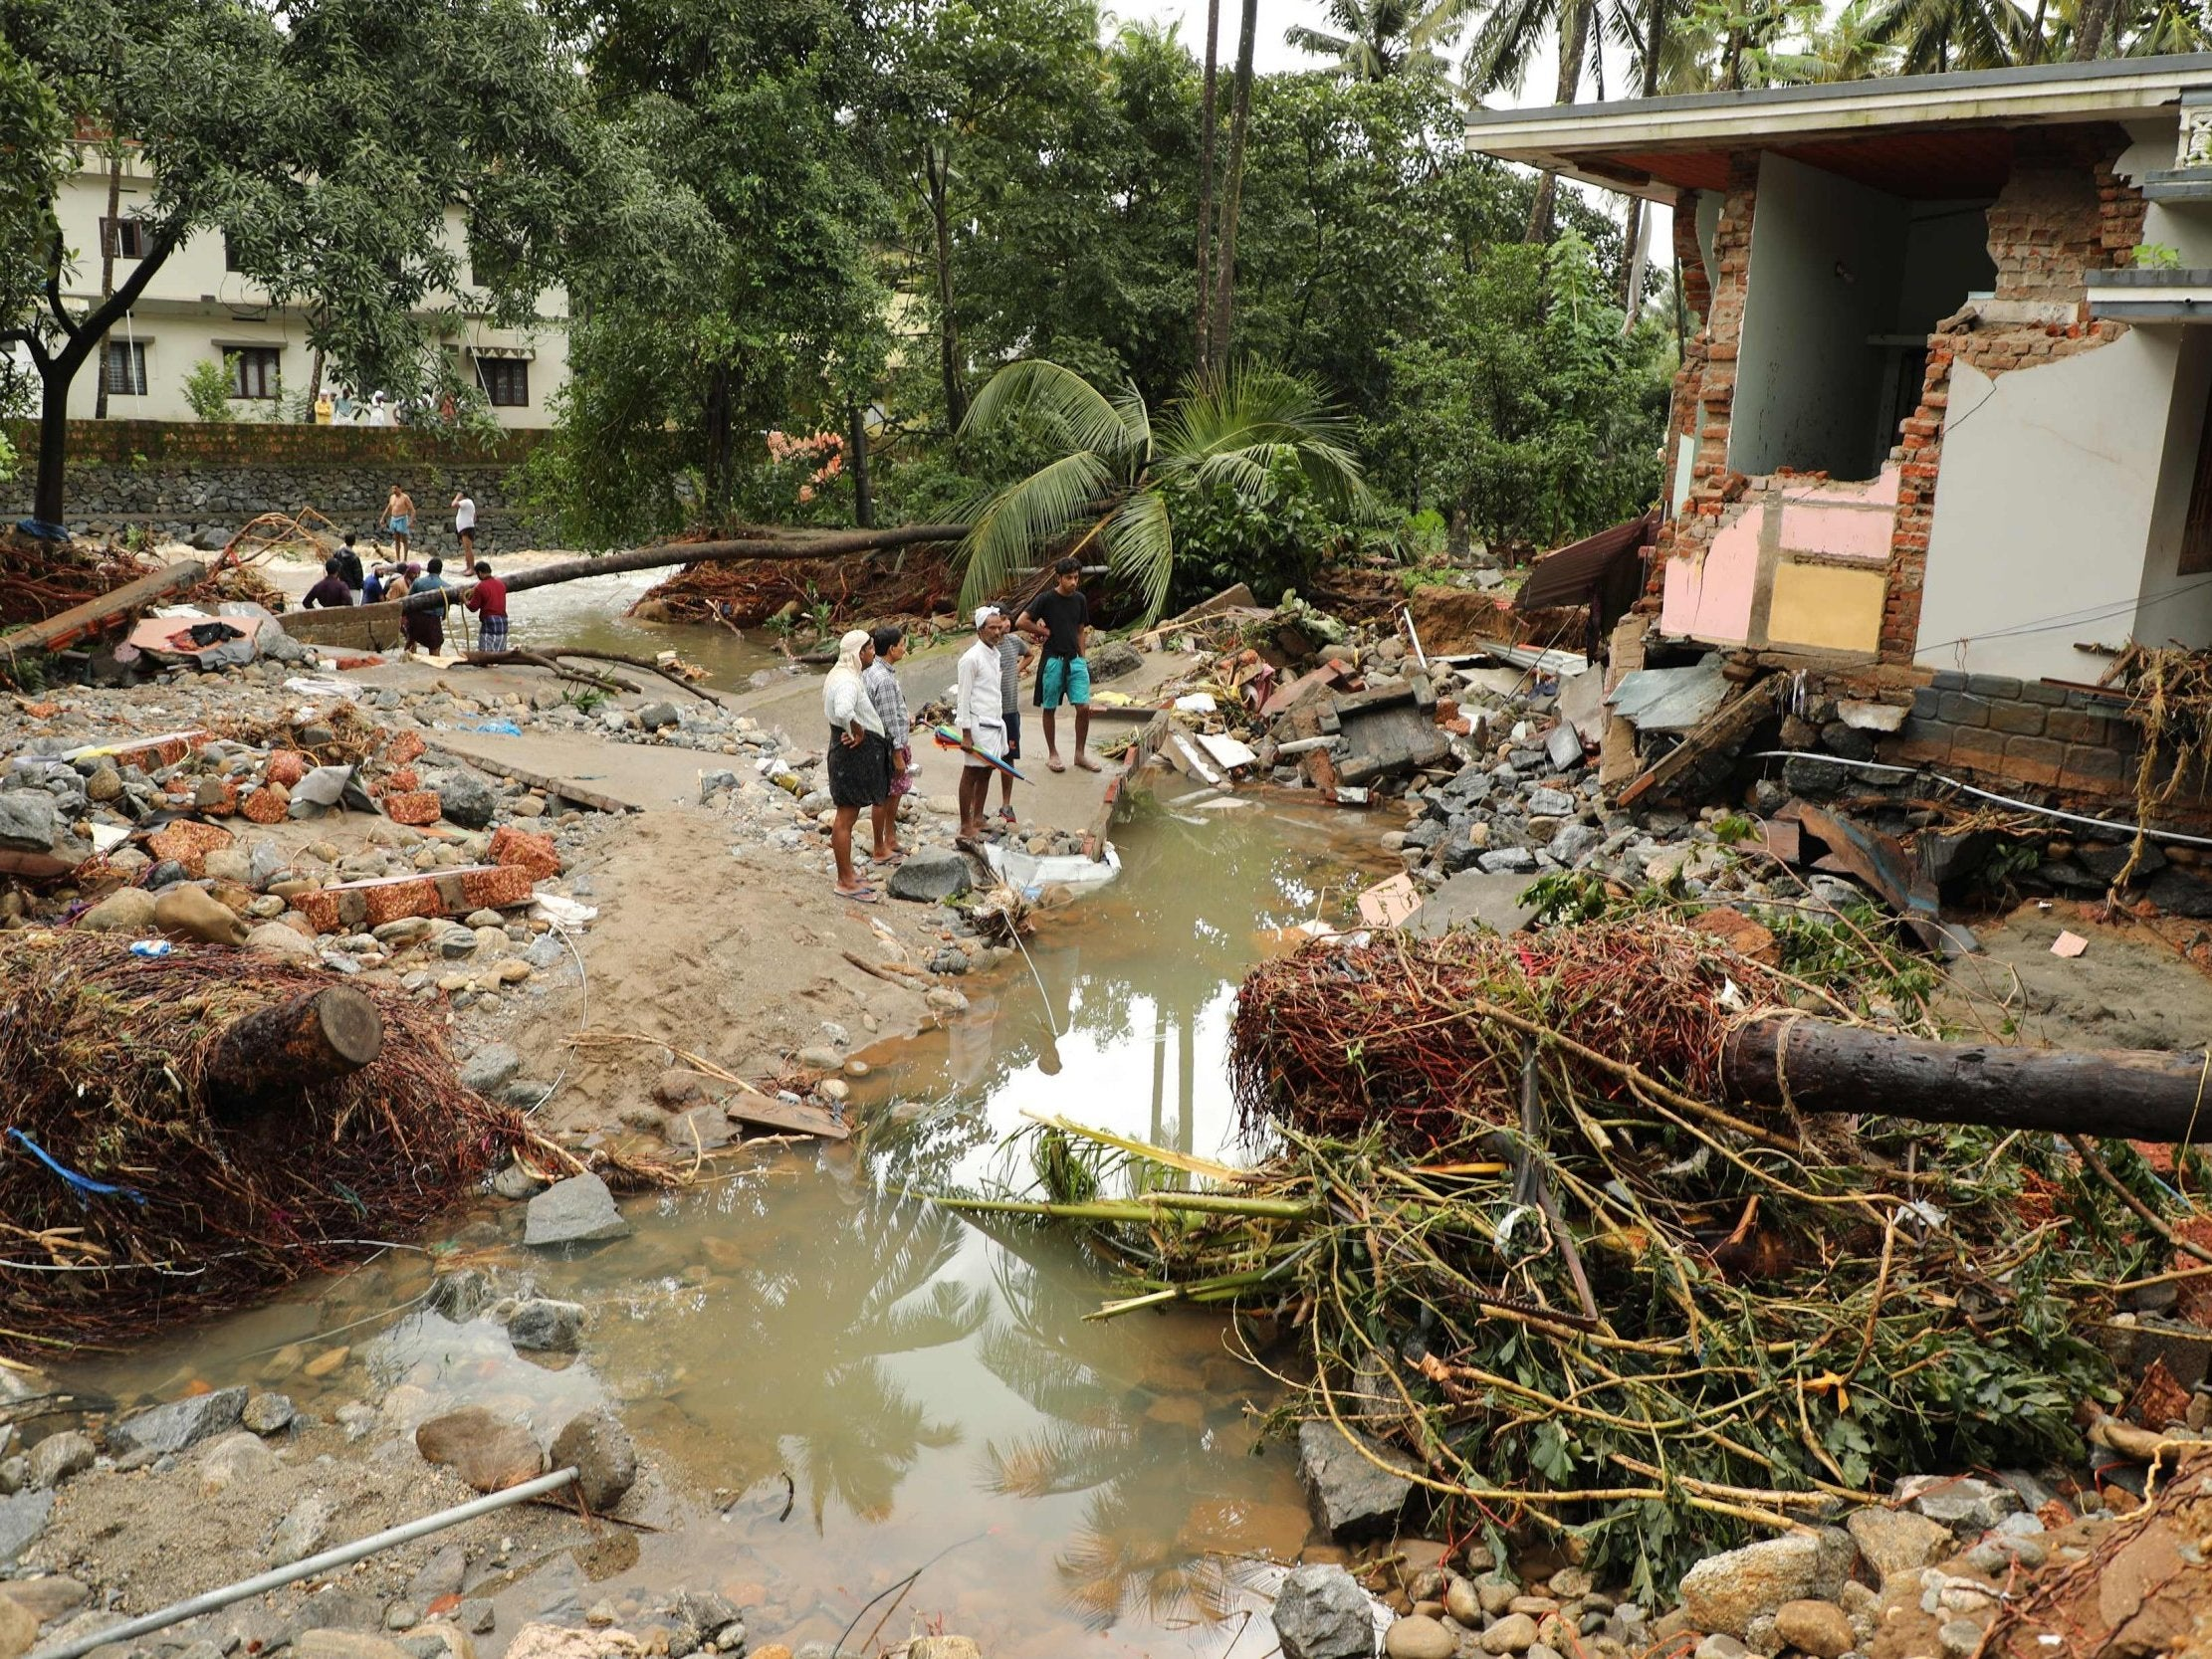 Kerala Floods: At Least 79 Killed In India Amid Landslides And Bridge  Collapses | The Independent